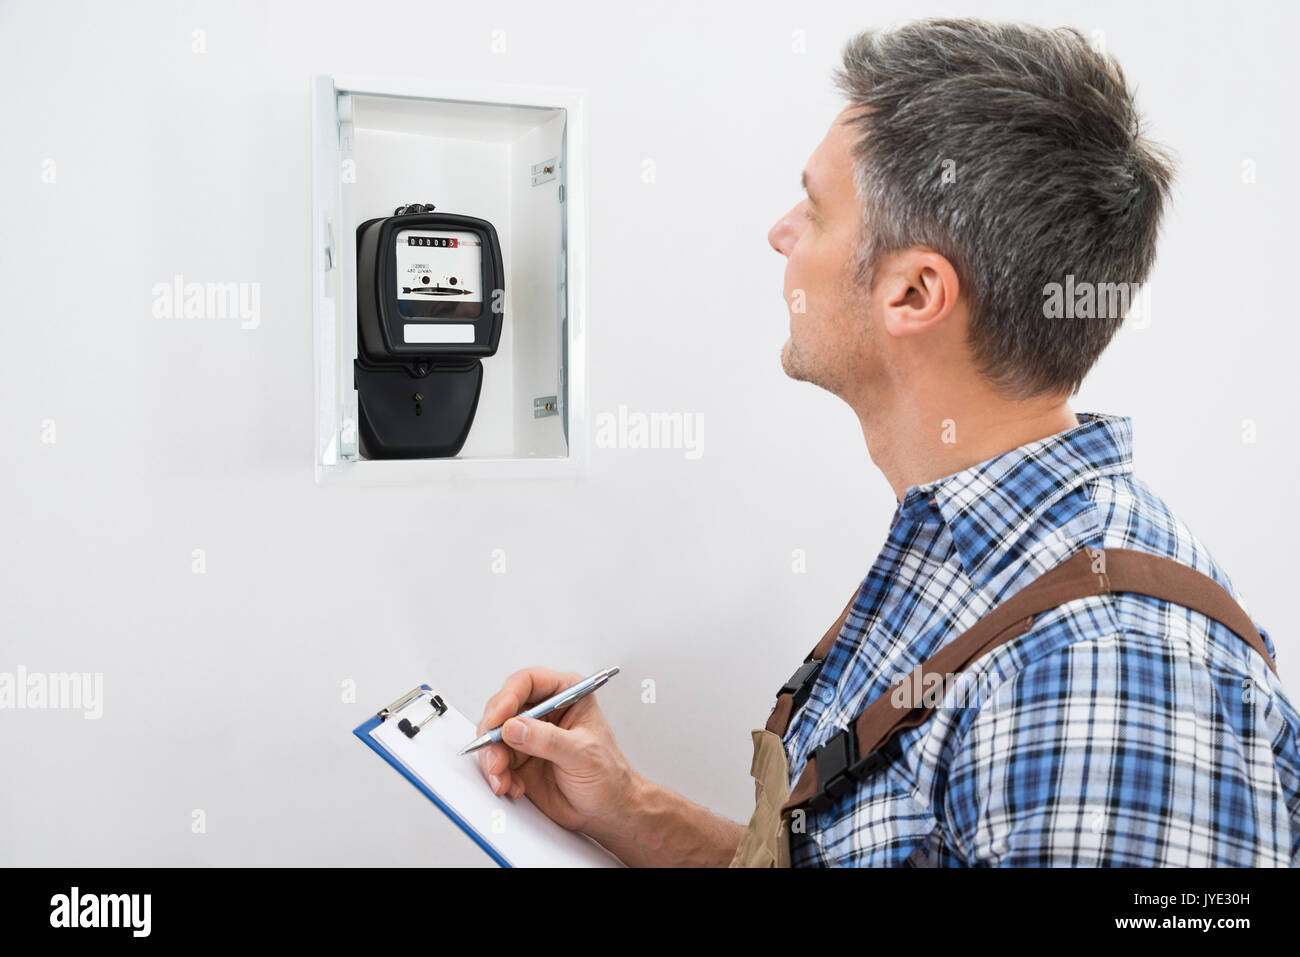 Automatic Meter Reading Stock Photos & Automatic Meter